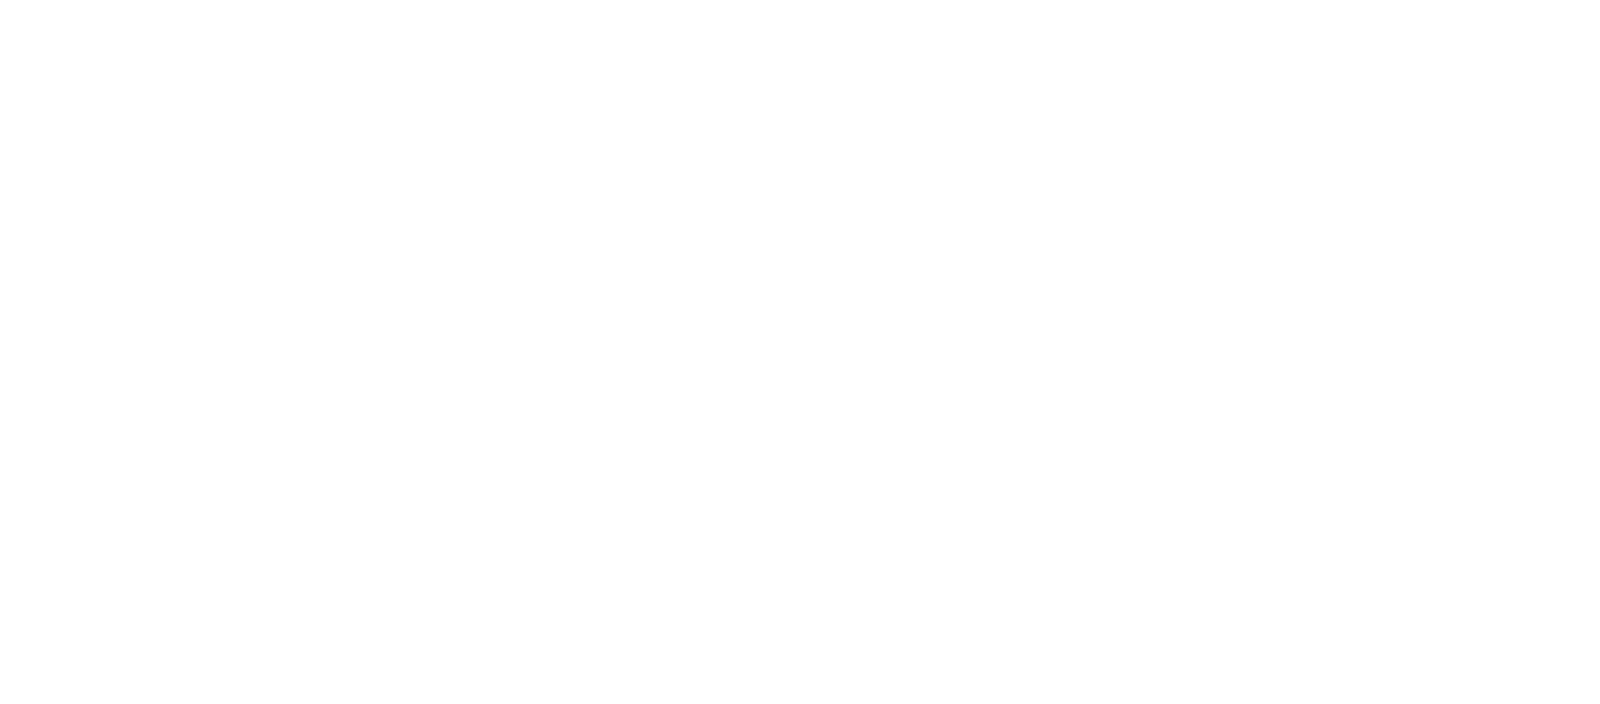 Shop2Help Oakland Gift Card Program